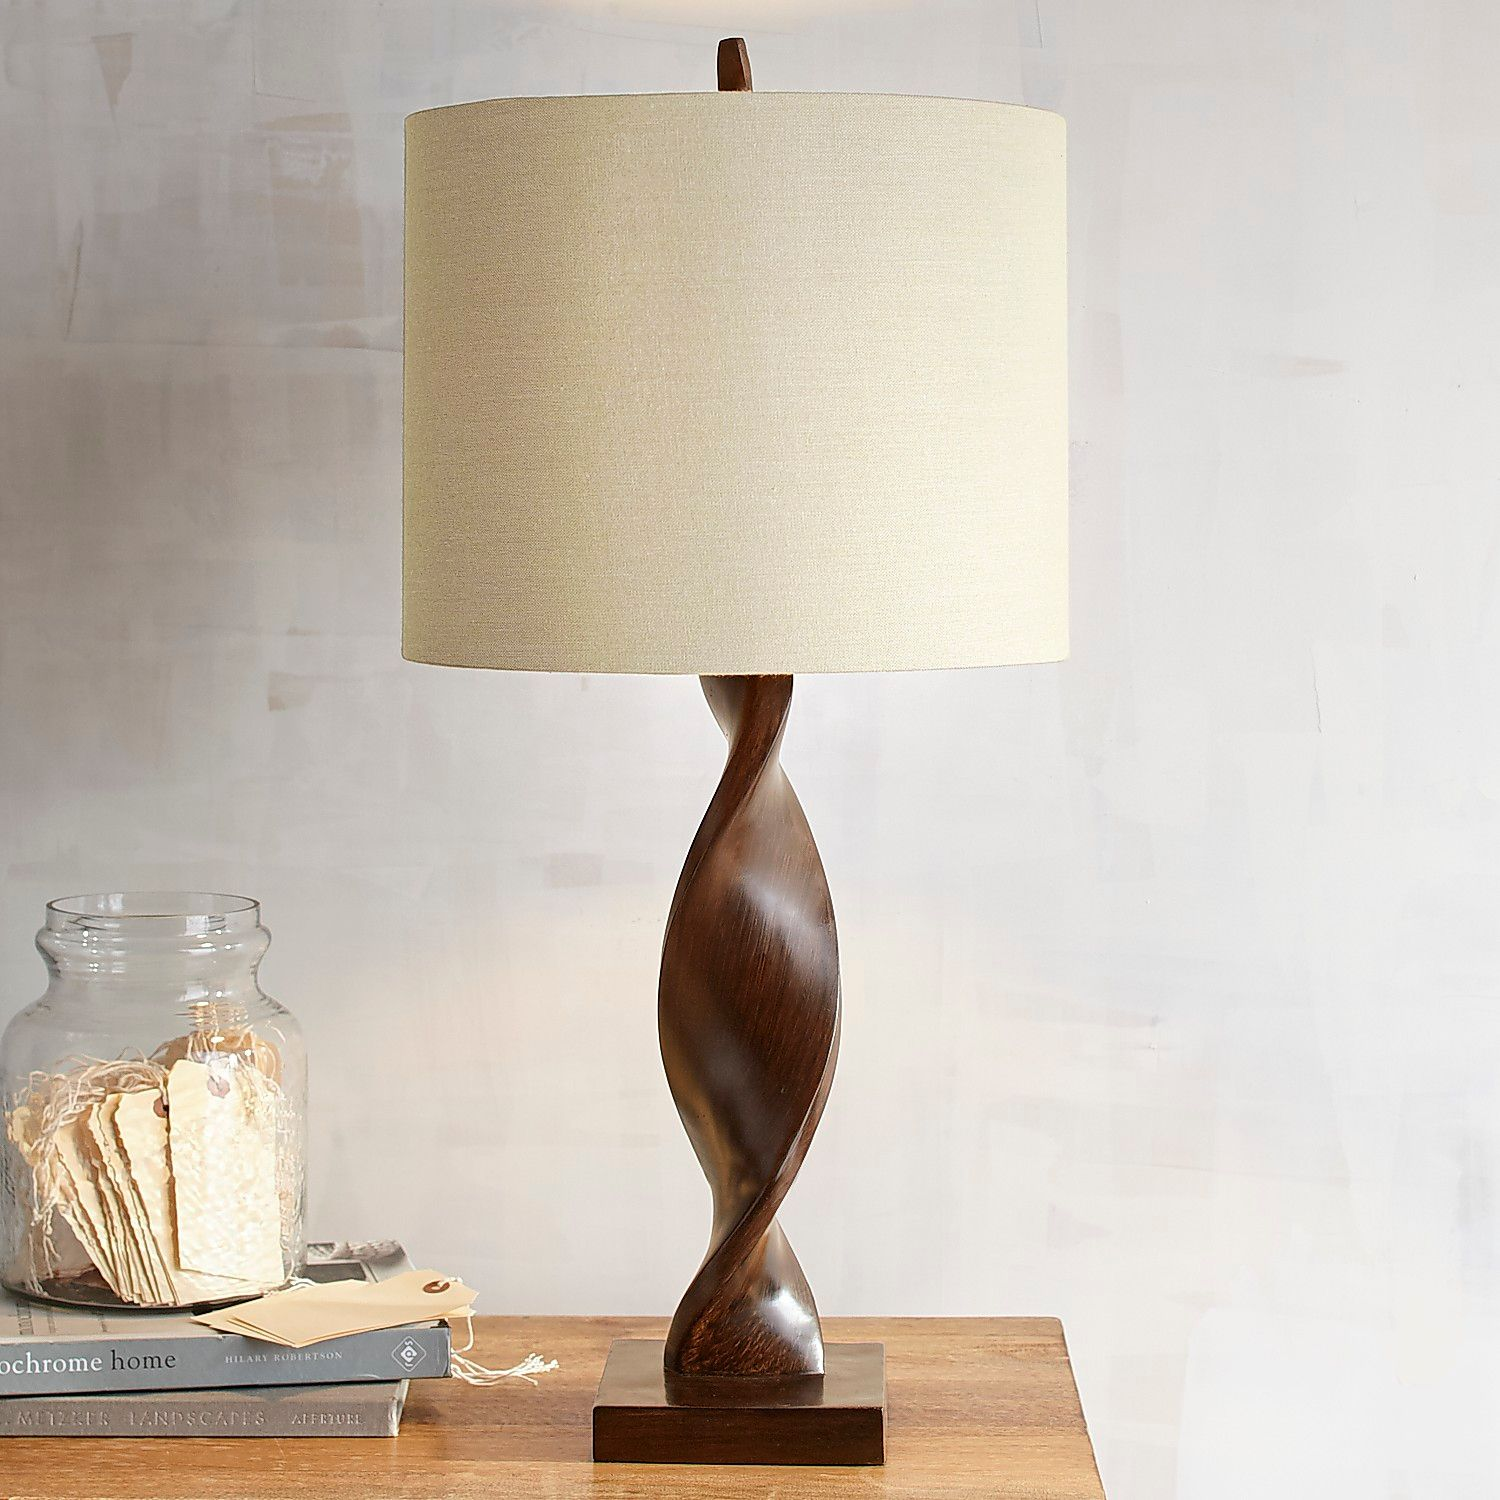 brown twist table lamp pier imports one accent lamps glass mirror nightstand insulated ice bucket counter height round pub dale tiffany dragonfly ikea small square outdoor wicker